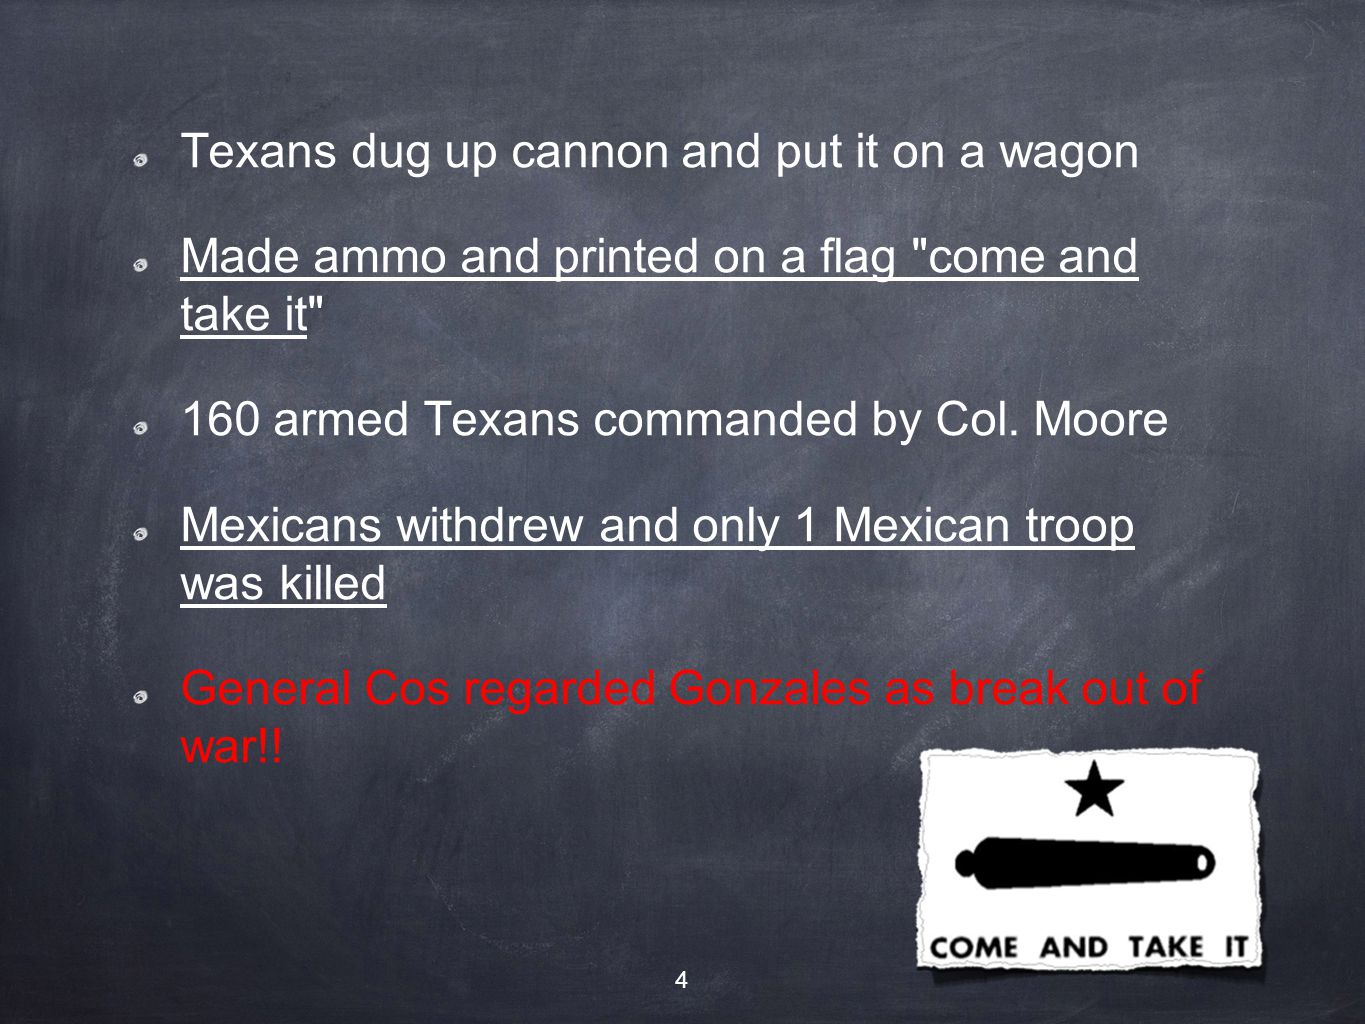 Texans dug up cannon and put it on a wagon